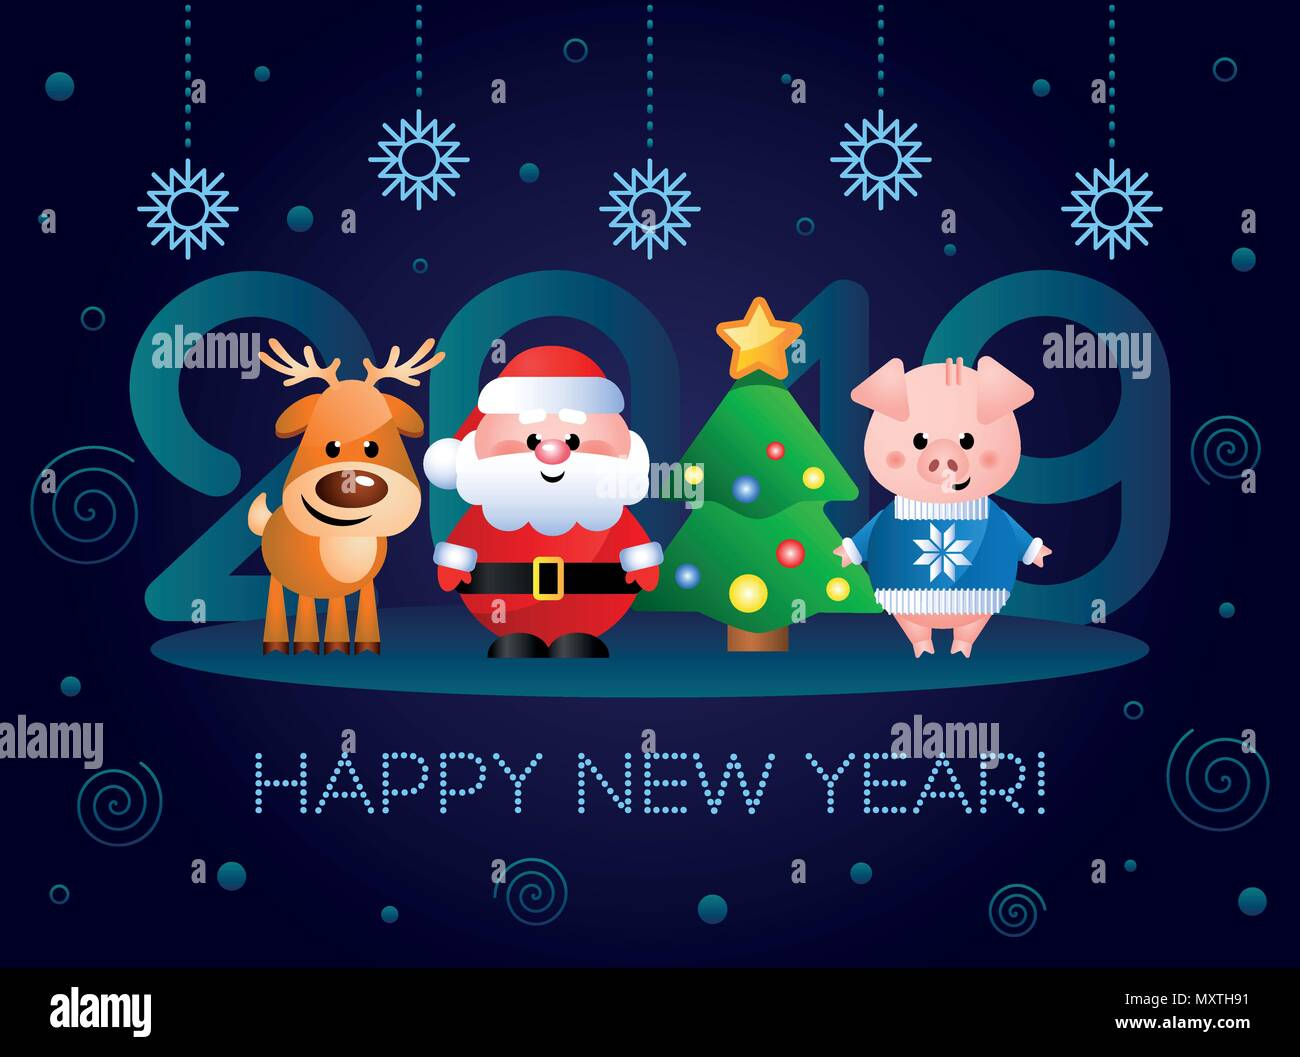 Happy New Year 2019 Greeting Card With Cute Cartoon Characters